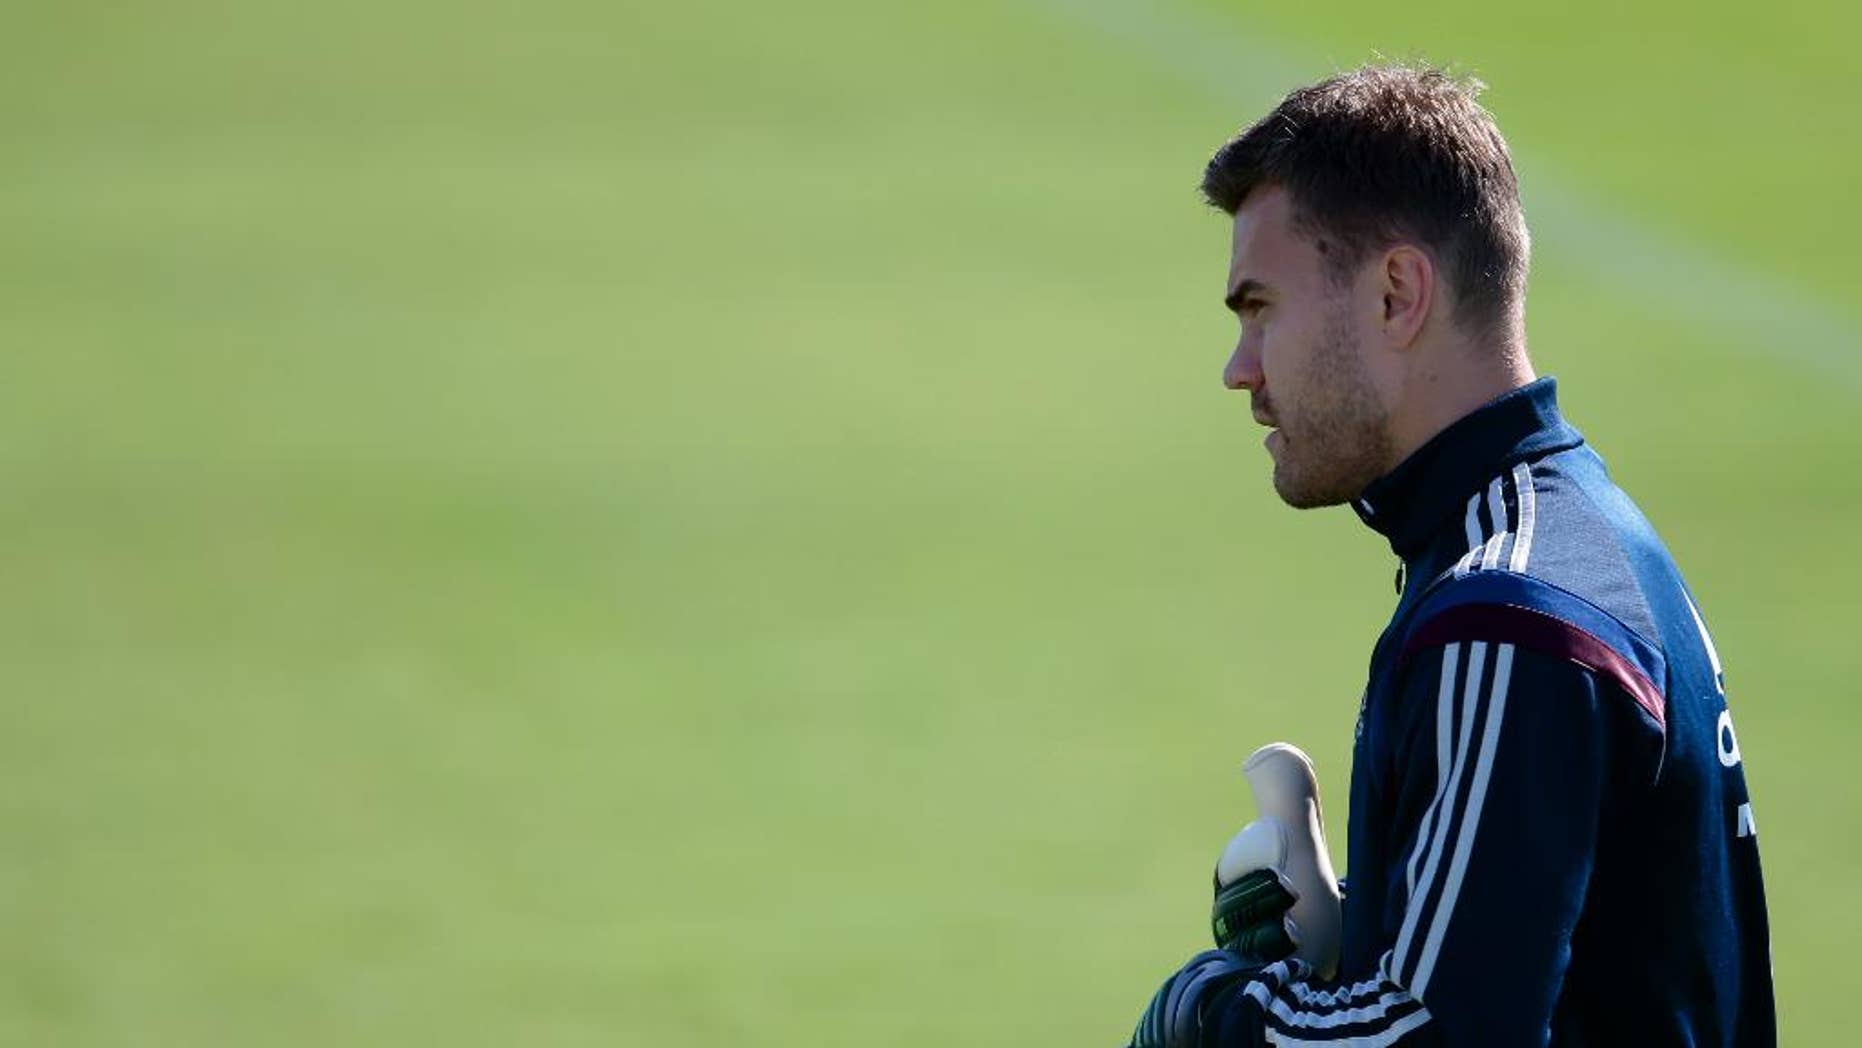 Goalkeeper Igor Akinfeev looks at a ball during Russian national soccer team training session in Itu, Brazil, on Thursday, June 19, 2014. Russia will play next game against Belgium in group H of the 2014 soccer World Cup. (AP Photo/Ivan Sekretarev)